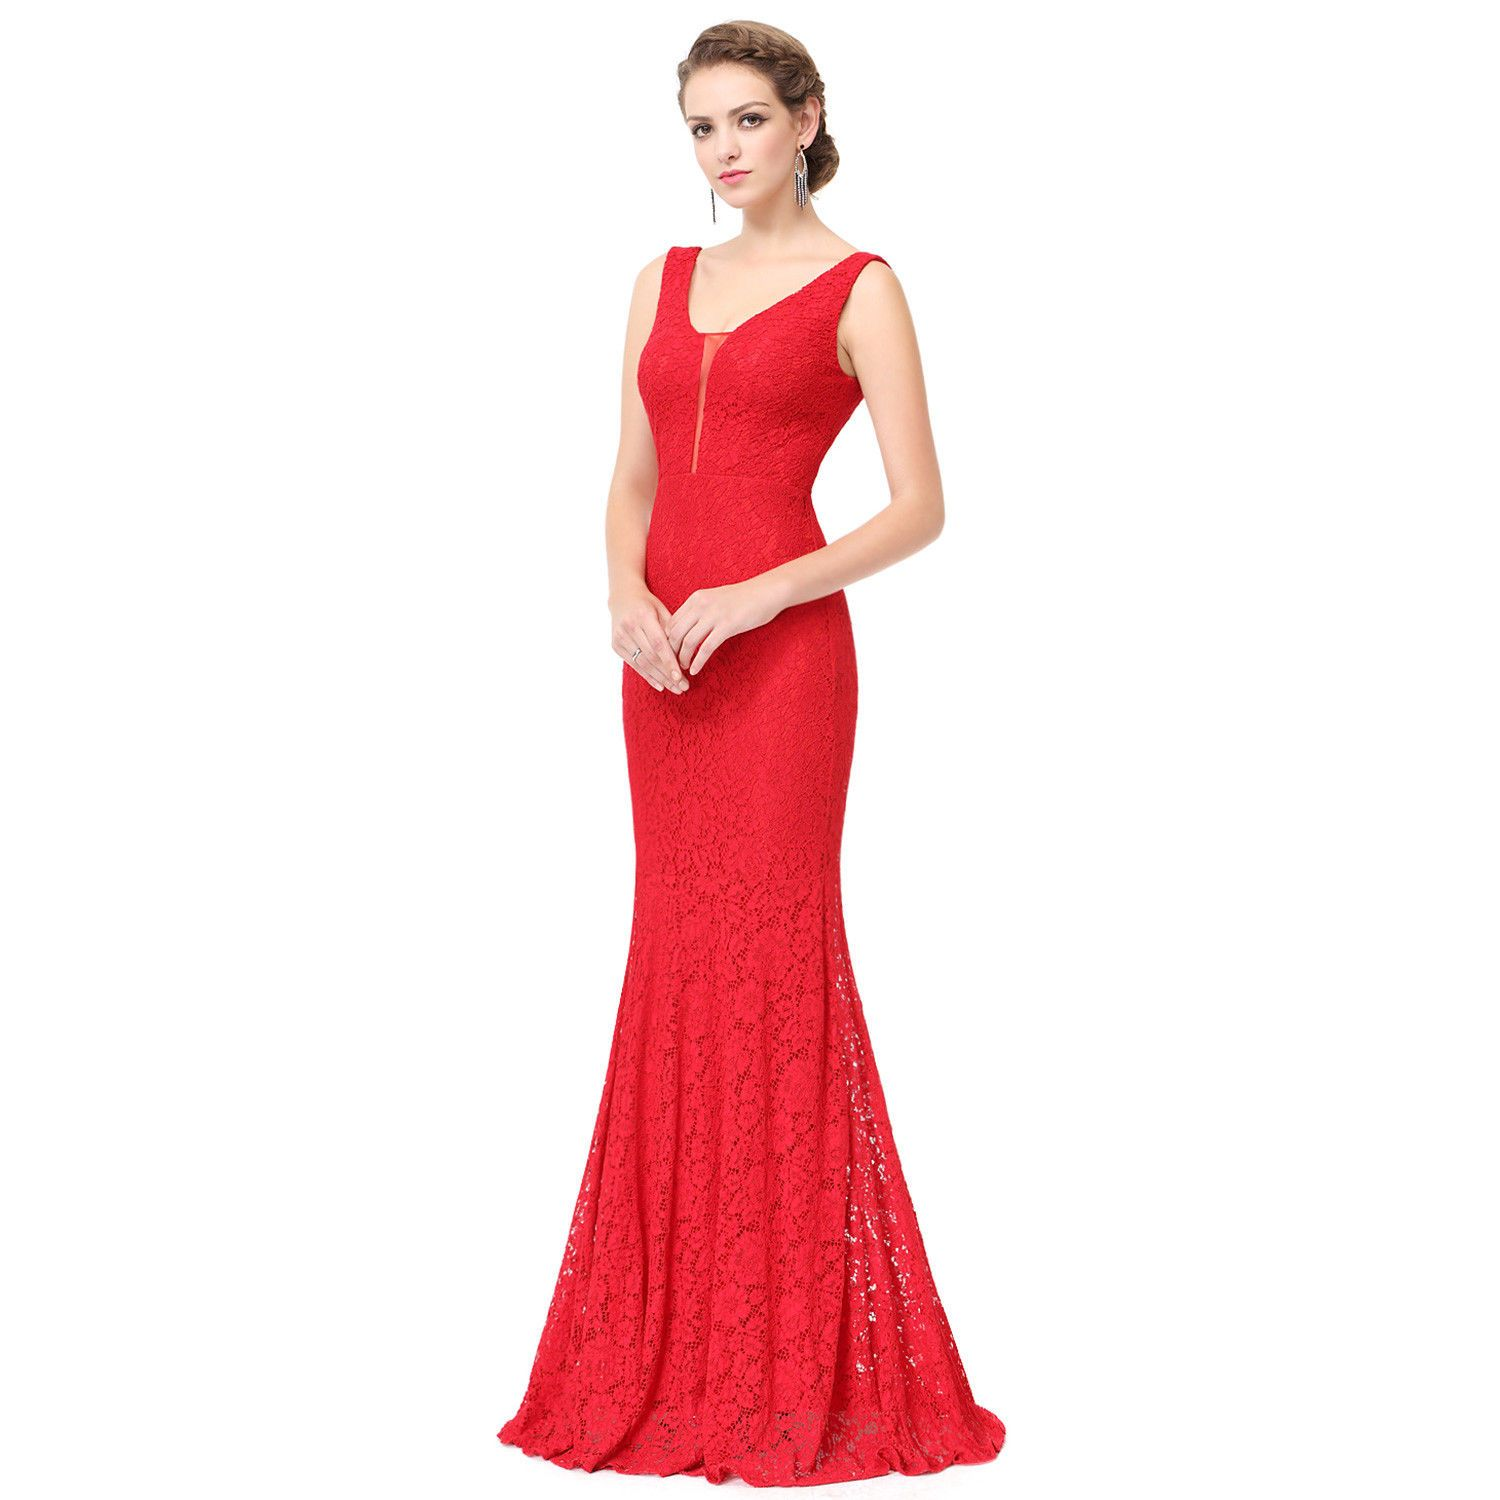 Cool women lace bodycon cocktail prom gown party fishtail dress red